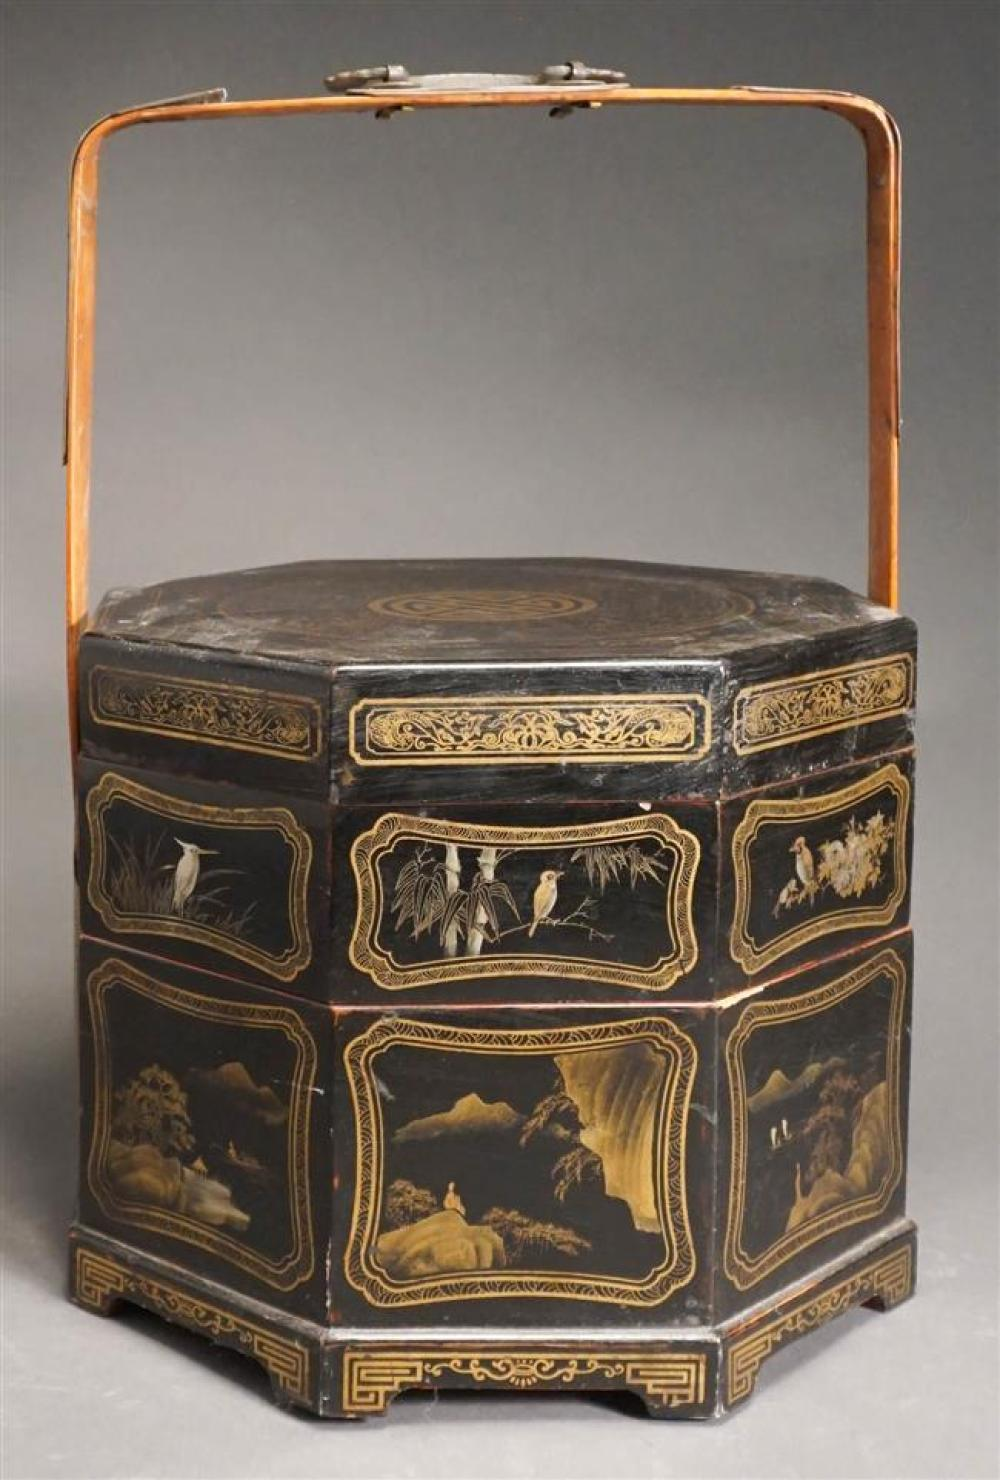 Chinese Gilt Decorated Black lacquer Storage Box; 8.5 x 11.5 x 11.5 HWD Inches